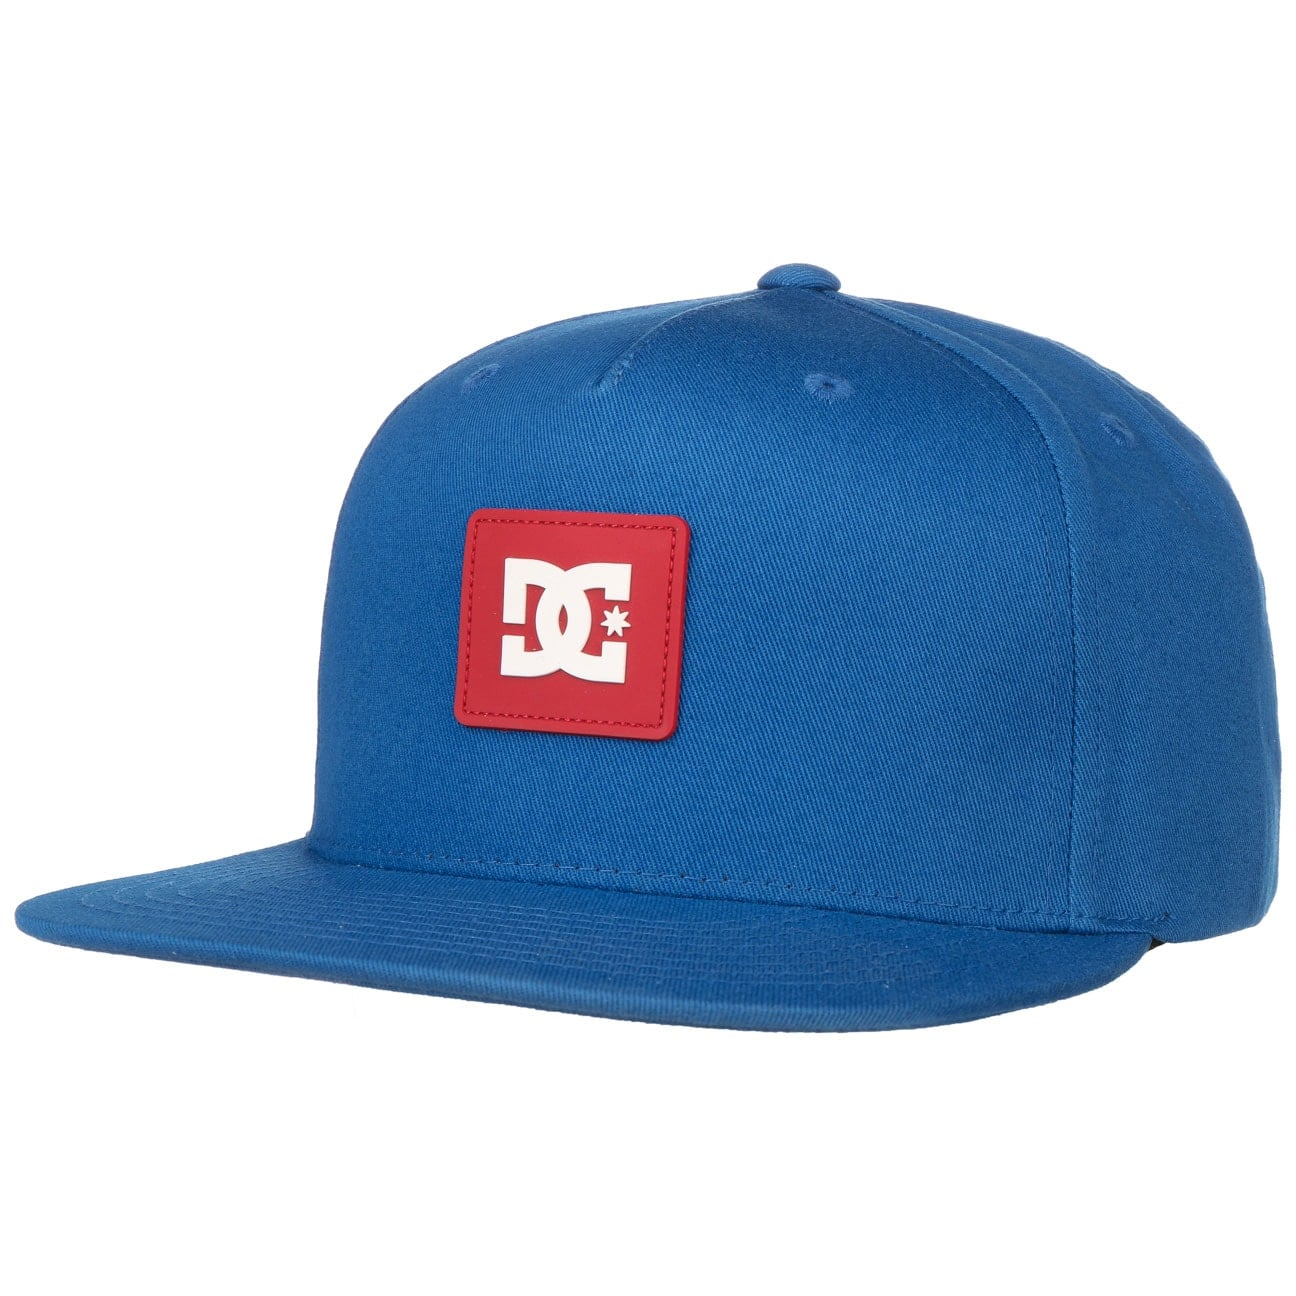 Gorra Snapback Snapdoodle by DC Shoes Co  gorra plana